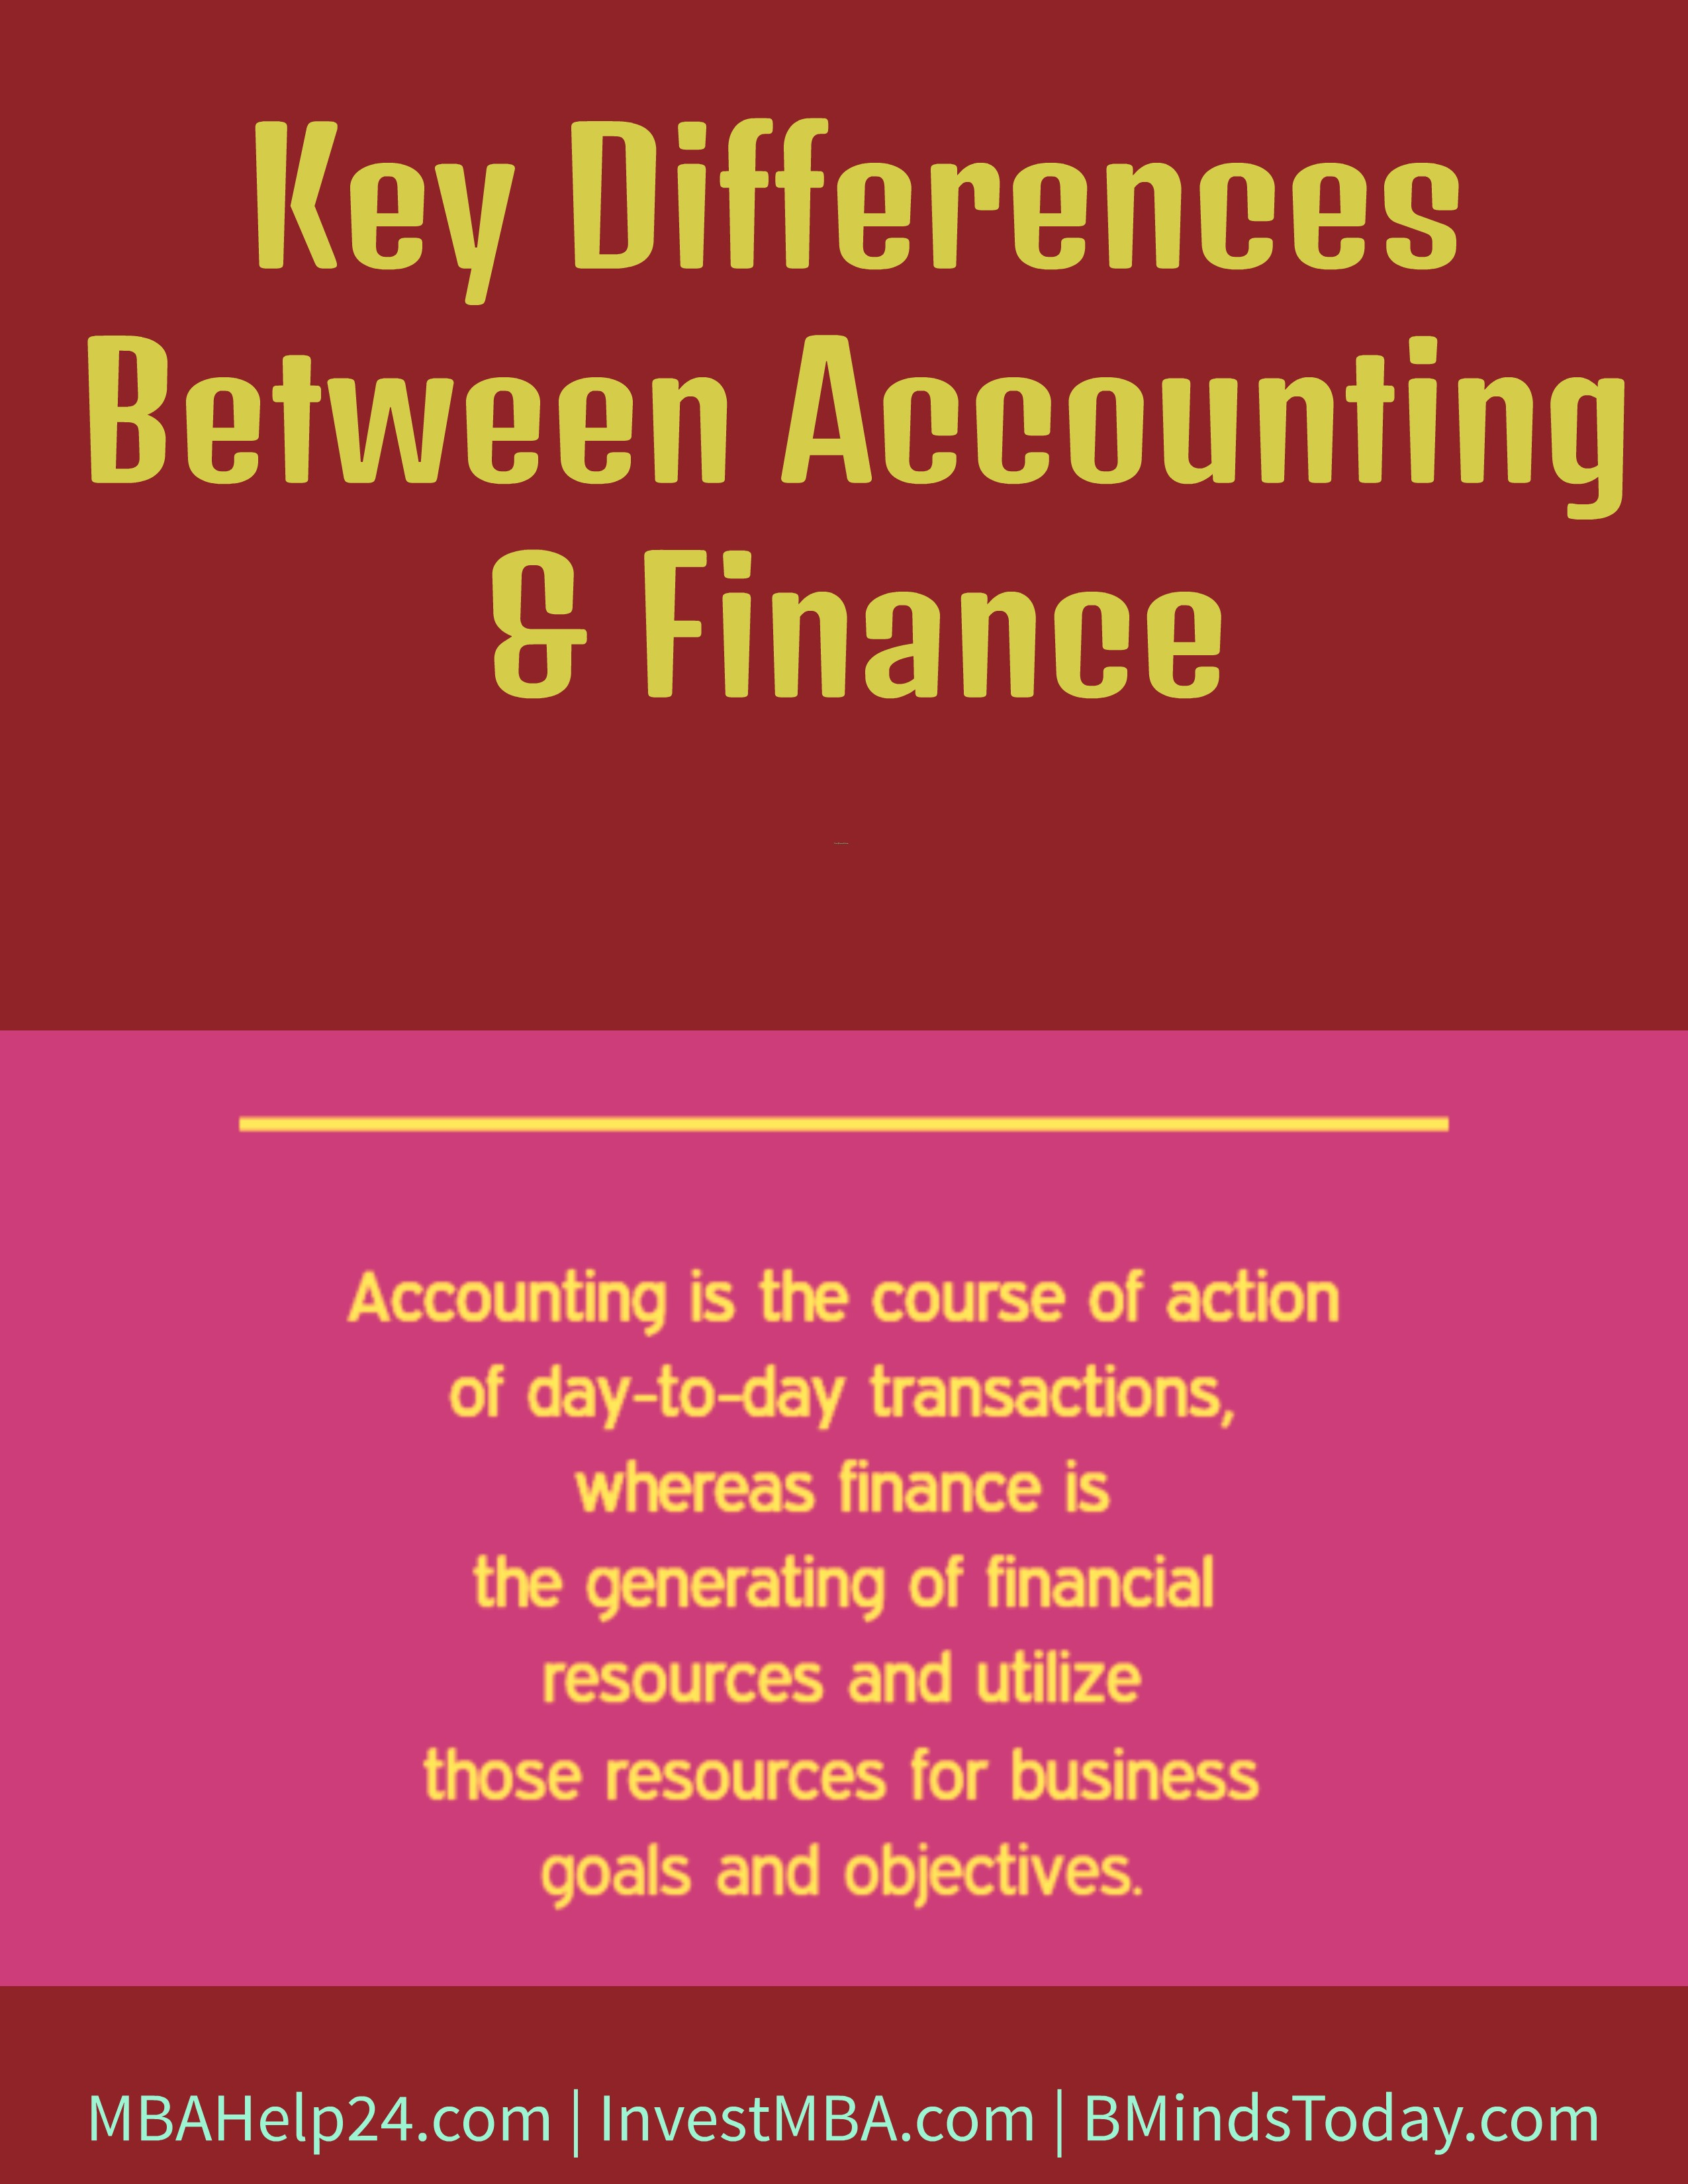 Key Differences Between Accounting and Finance | Financial Resources  Accounting and Finance Key Differences Between Accounting and Finance | Financial Resources Key Differences Between Accounting and Finance